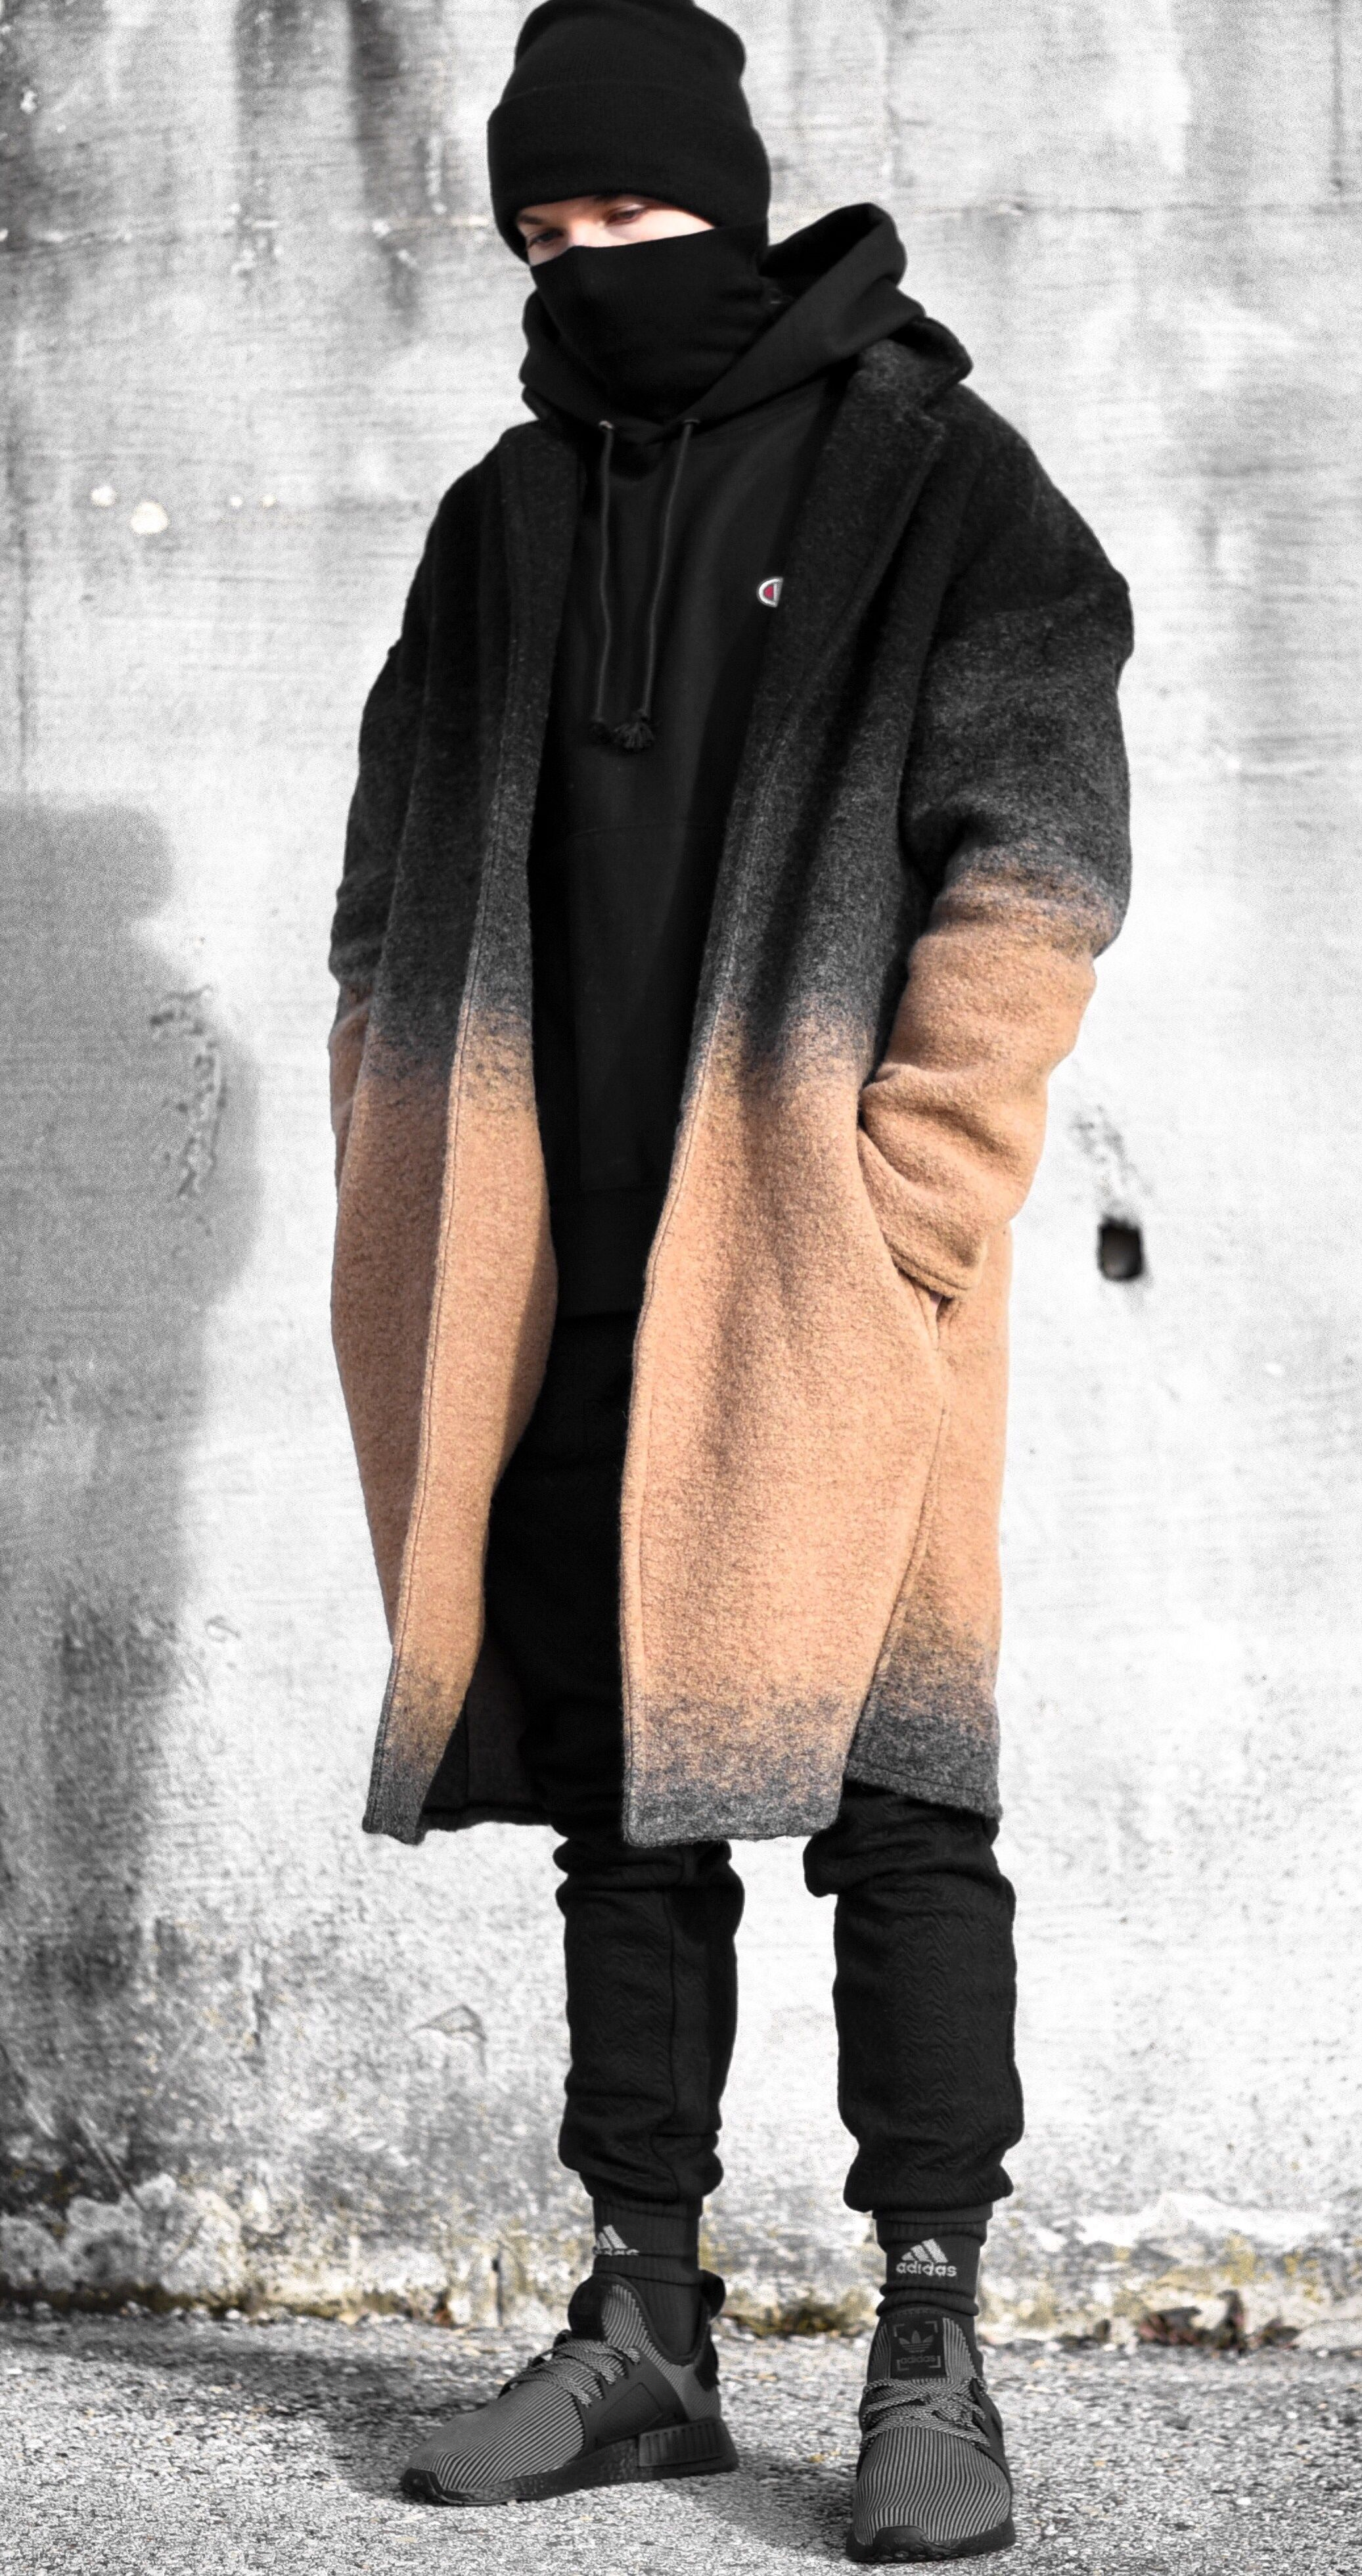 the latest bc12a 7b55f Wearing a black hoodie by Tiffany Merucci, coat by George Heaton,  jogger pants by I LOVE UGLY, turtleneck sweater by HM, socks by adidas  traxion menance and ...